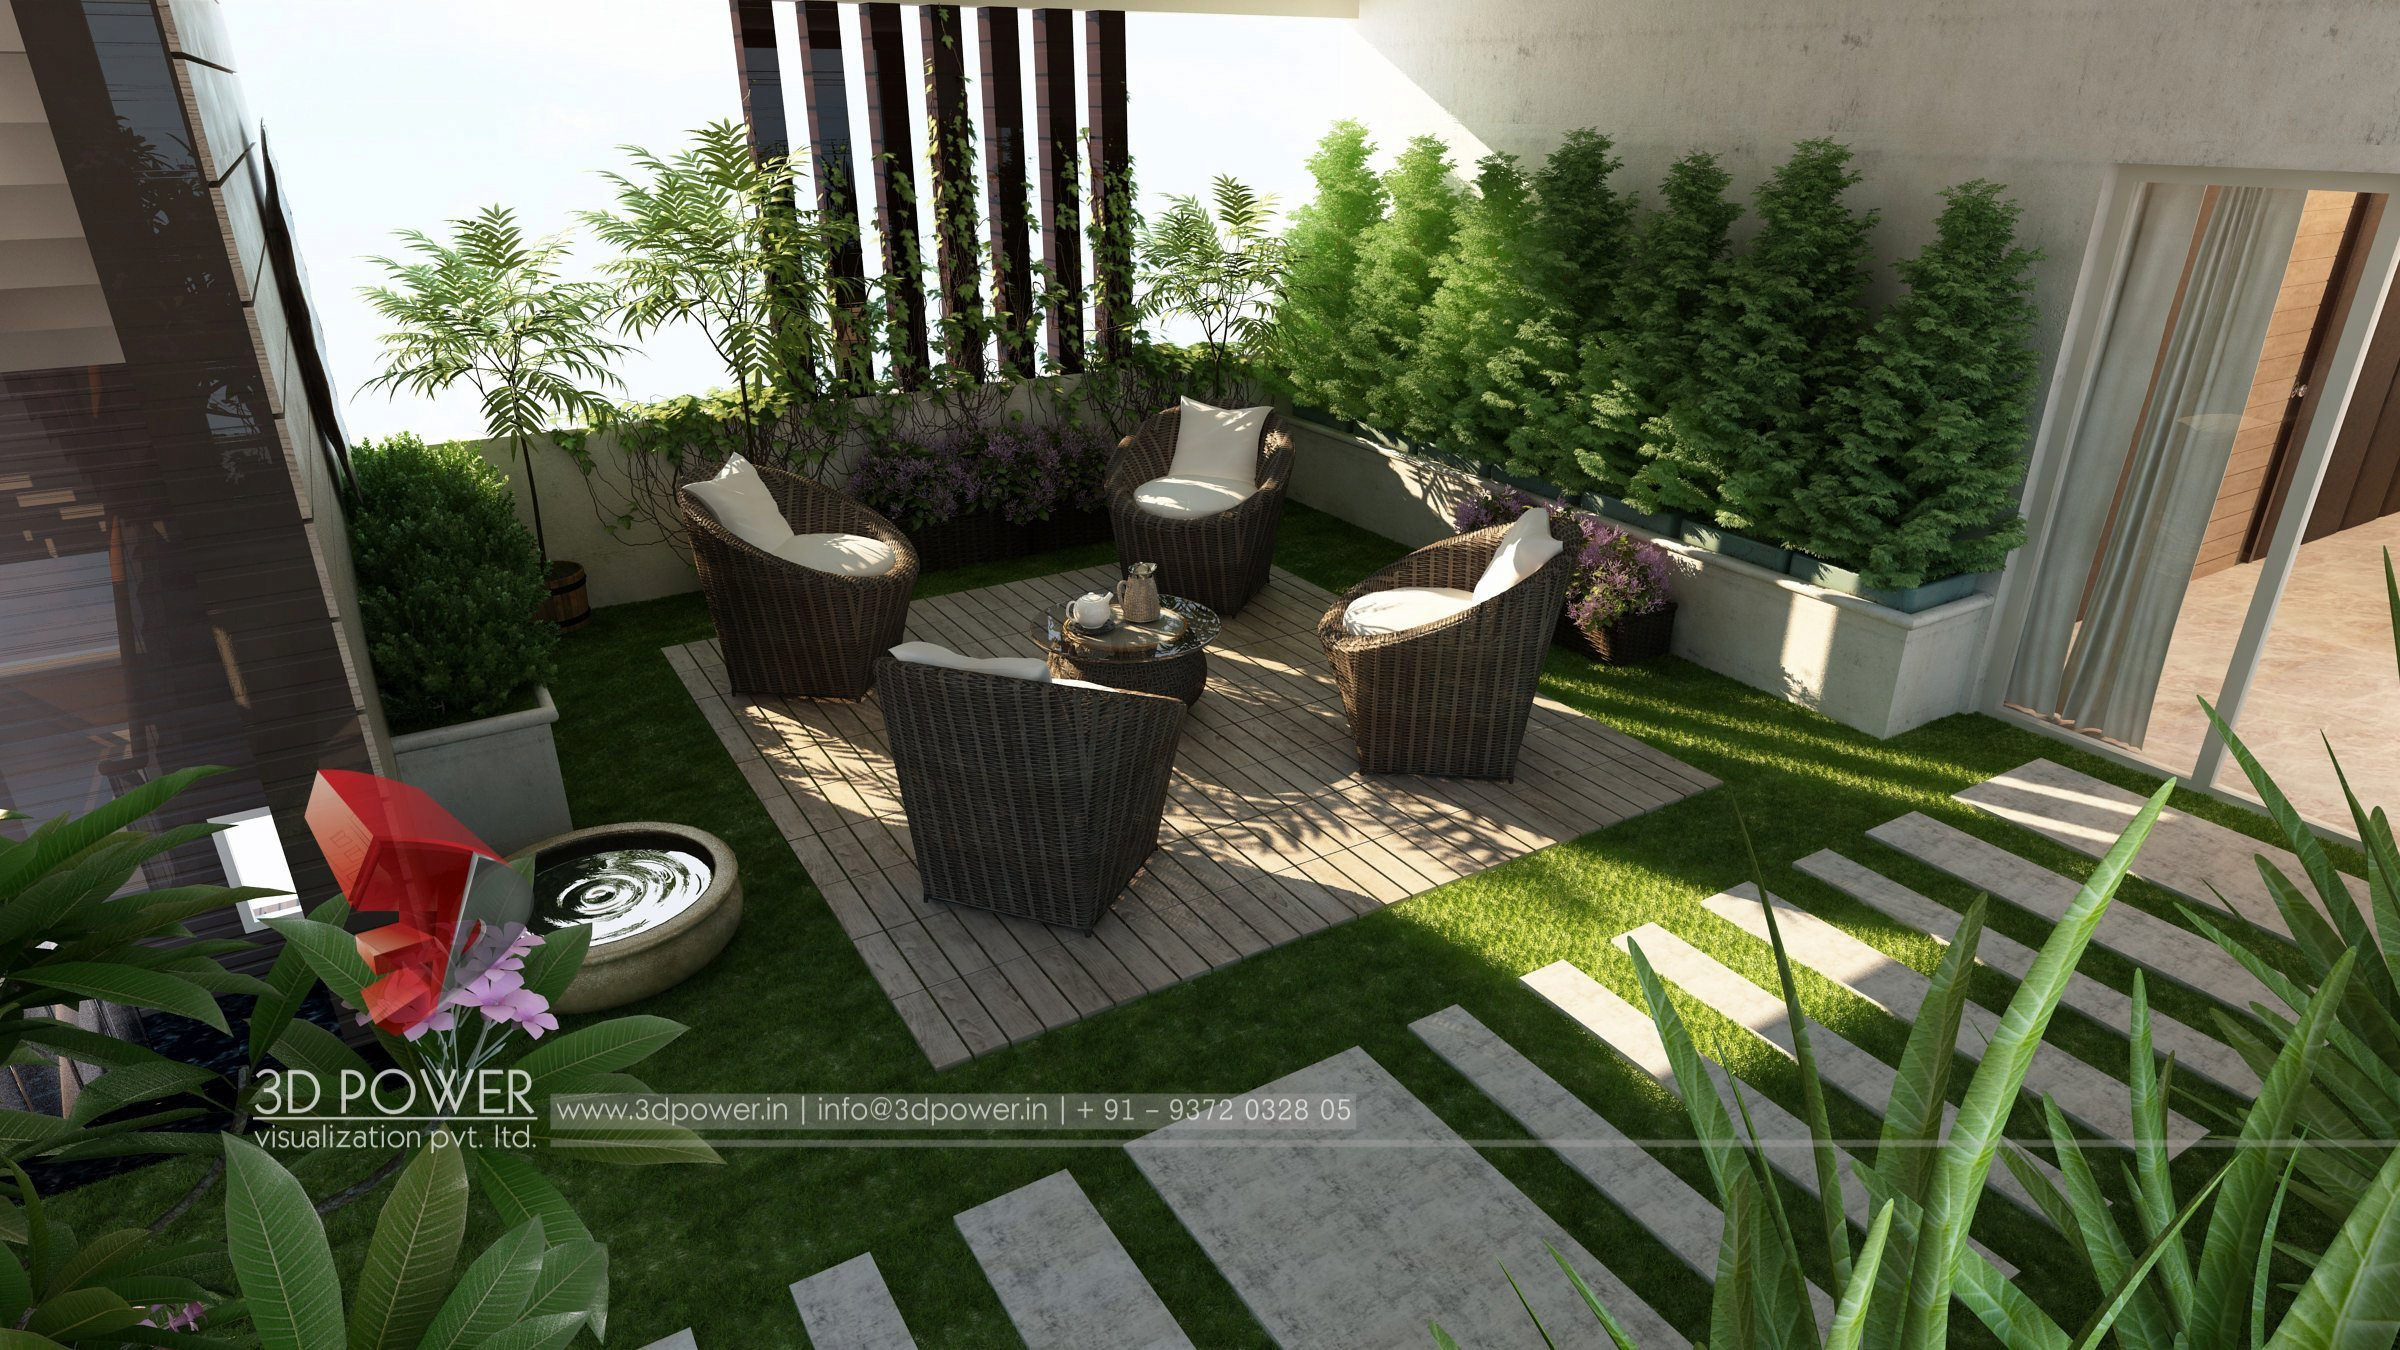 3D Interior Design & Rendering Services | Bungalow & Home Interior on visio landscape design, leed landscape design, home landscape design, 3d landscape design, garden landscape design, drawing landscape design, parametric landscape design, revit landscape design, top landscape design, basic landscape design, black and white landscape design, hand drawn landscape design, residential landscape design, spanish landscape design, business landscape design, architecture landscape design, hospital landscape design, draw your own landscape design, 2d landscape design, sketchup landscape design,